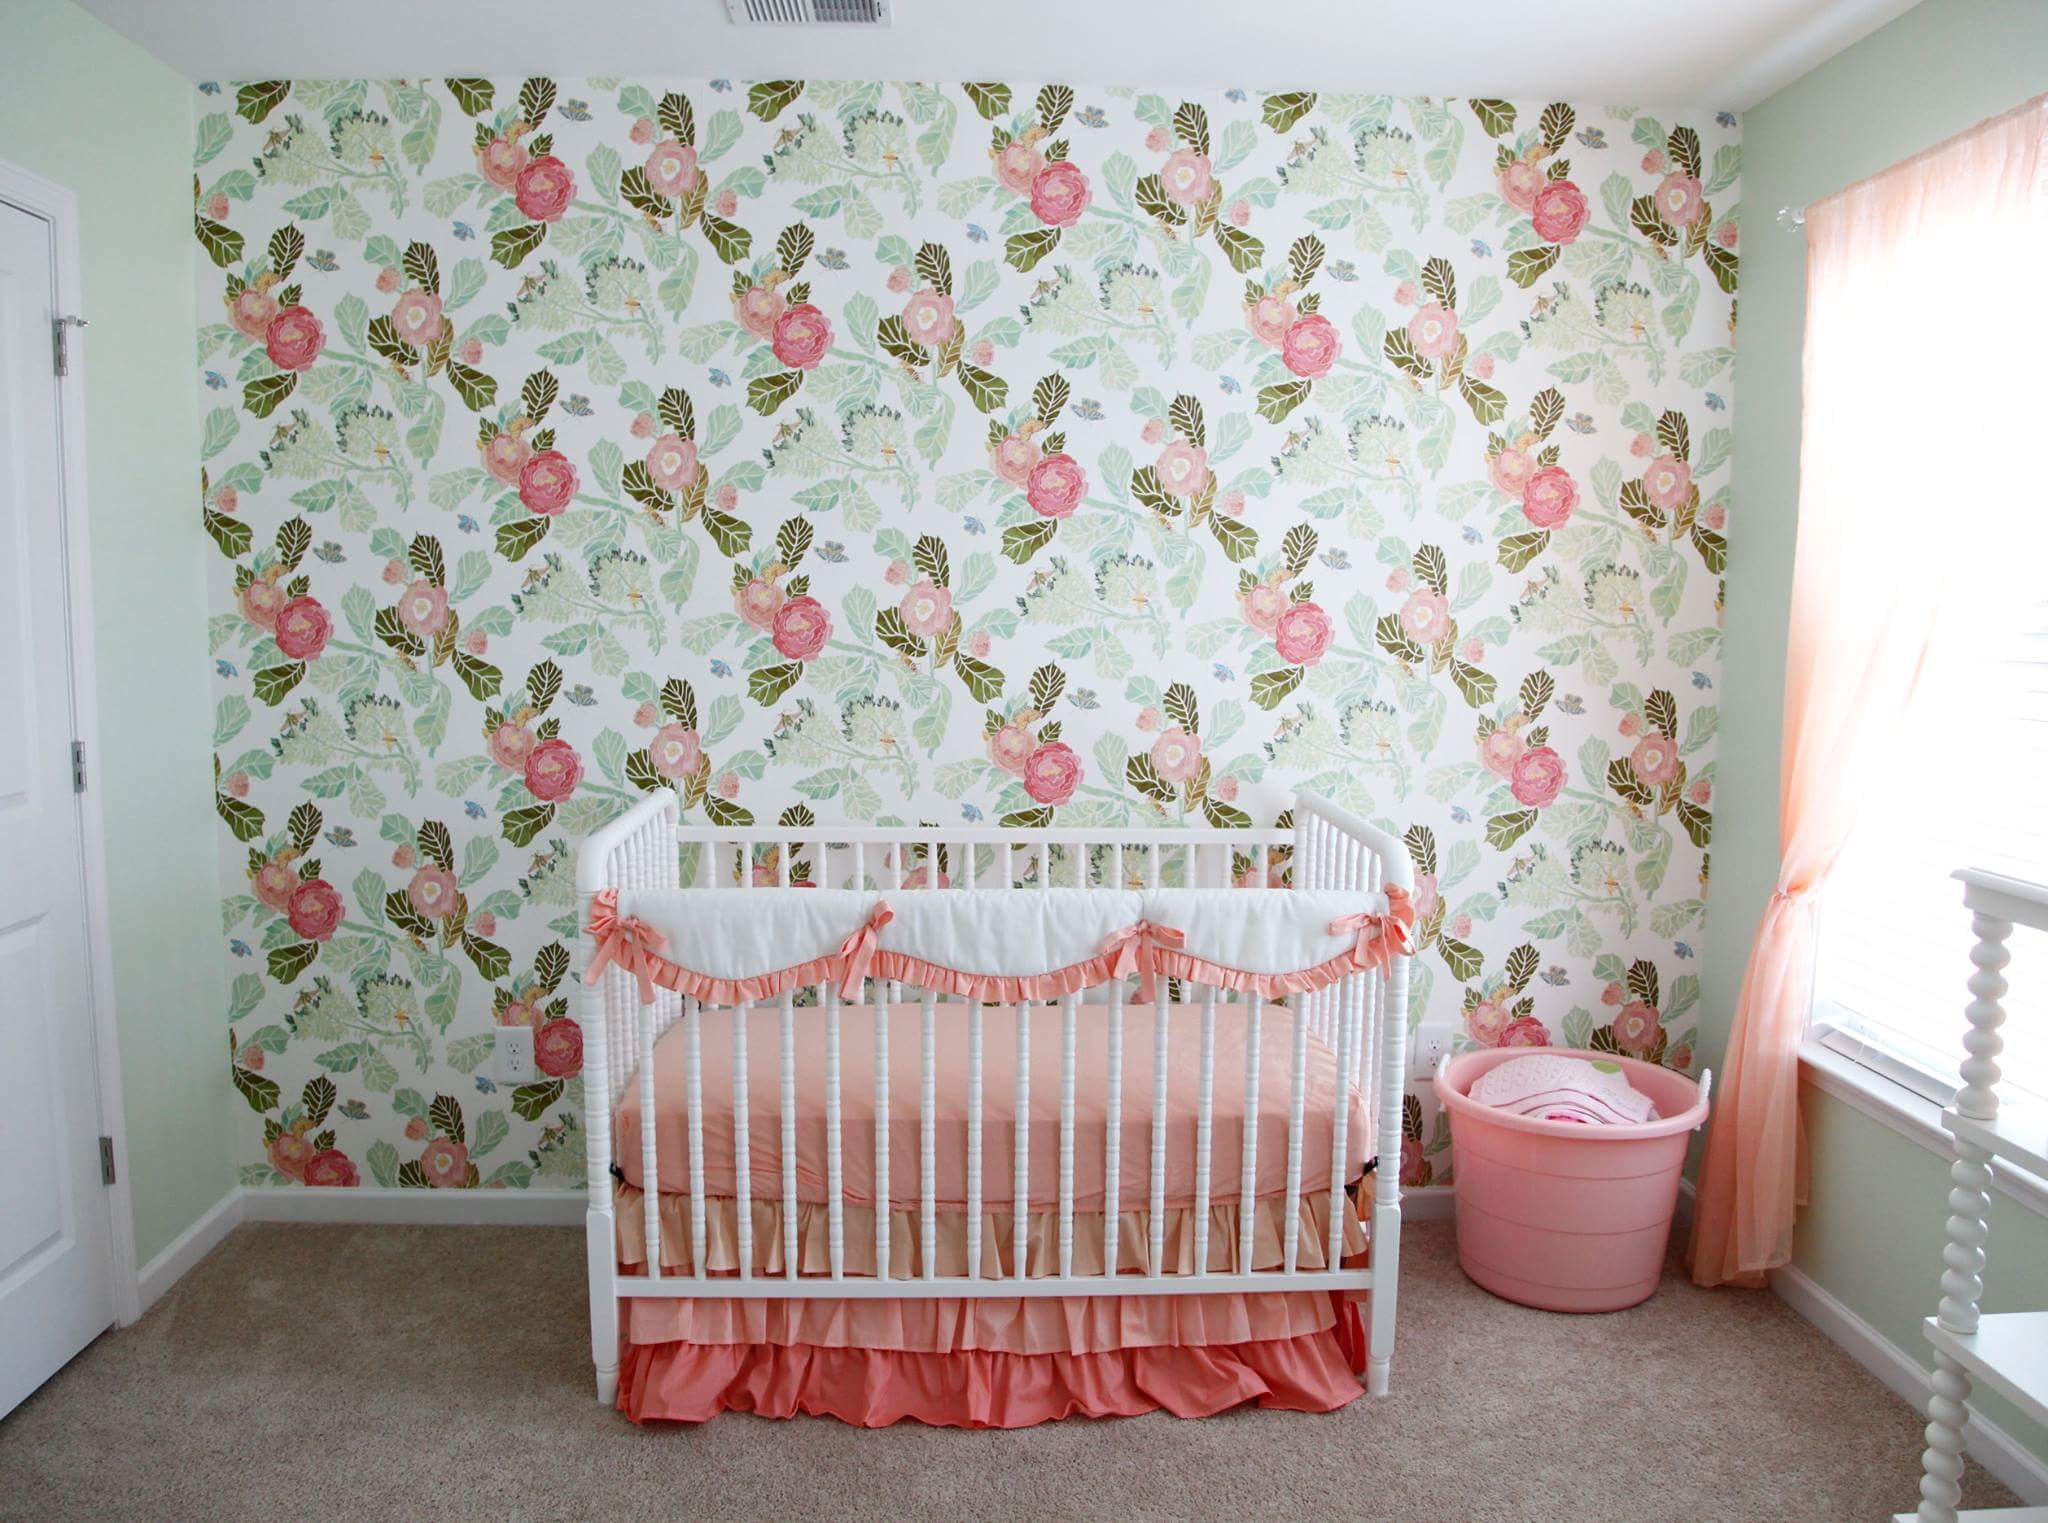 Nursery Themes For Girls Baby Girl Nursery Ideas Floral Nursery Inspiration Nursery